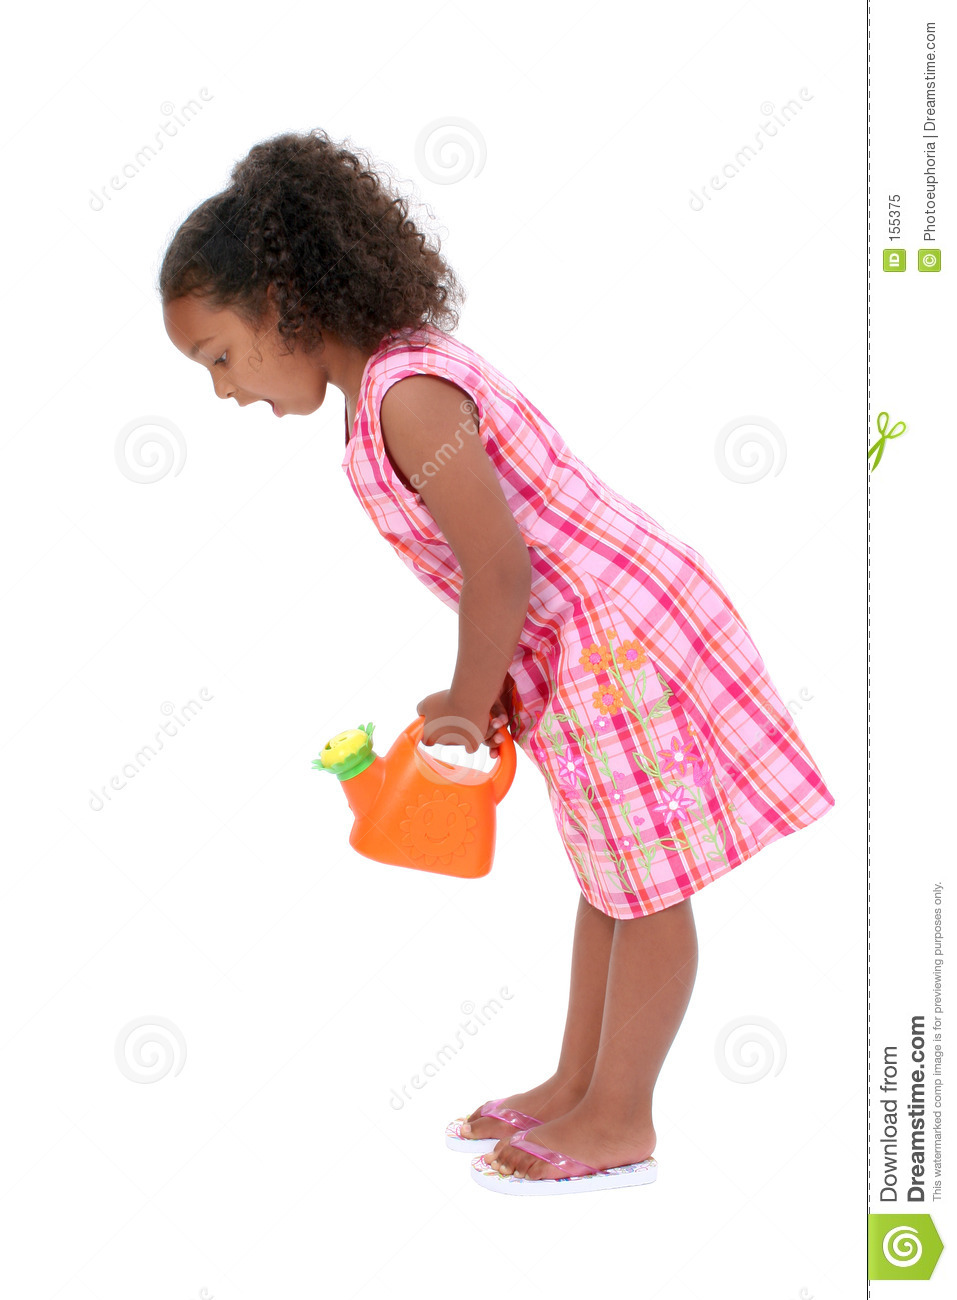 Beautiful Young Girl With Flower Watering Can Looking Down Surpr